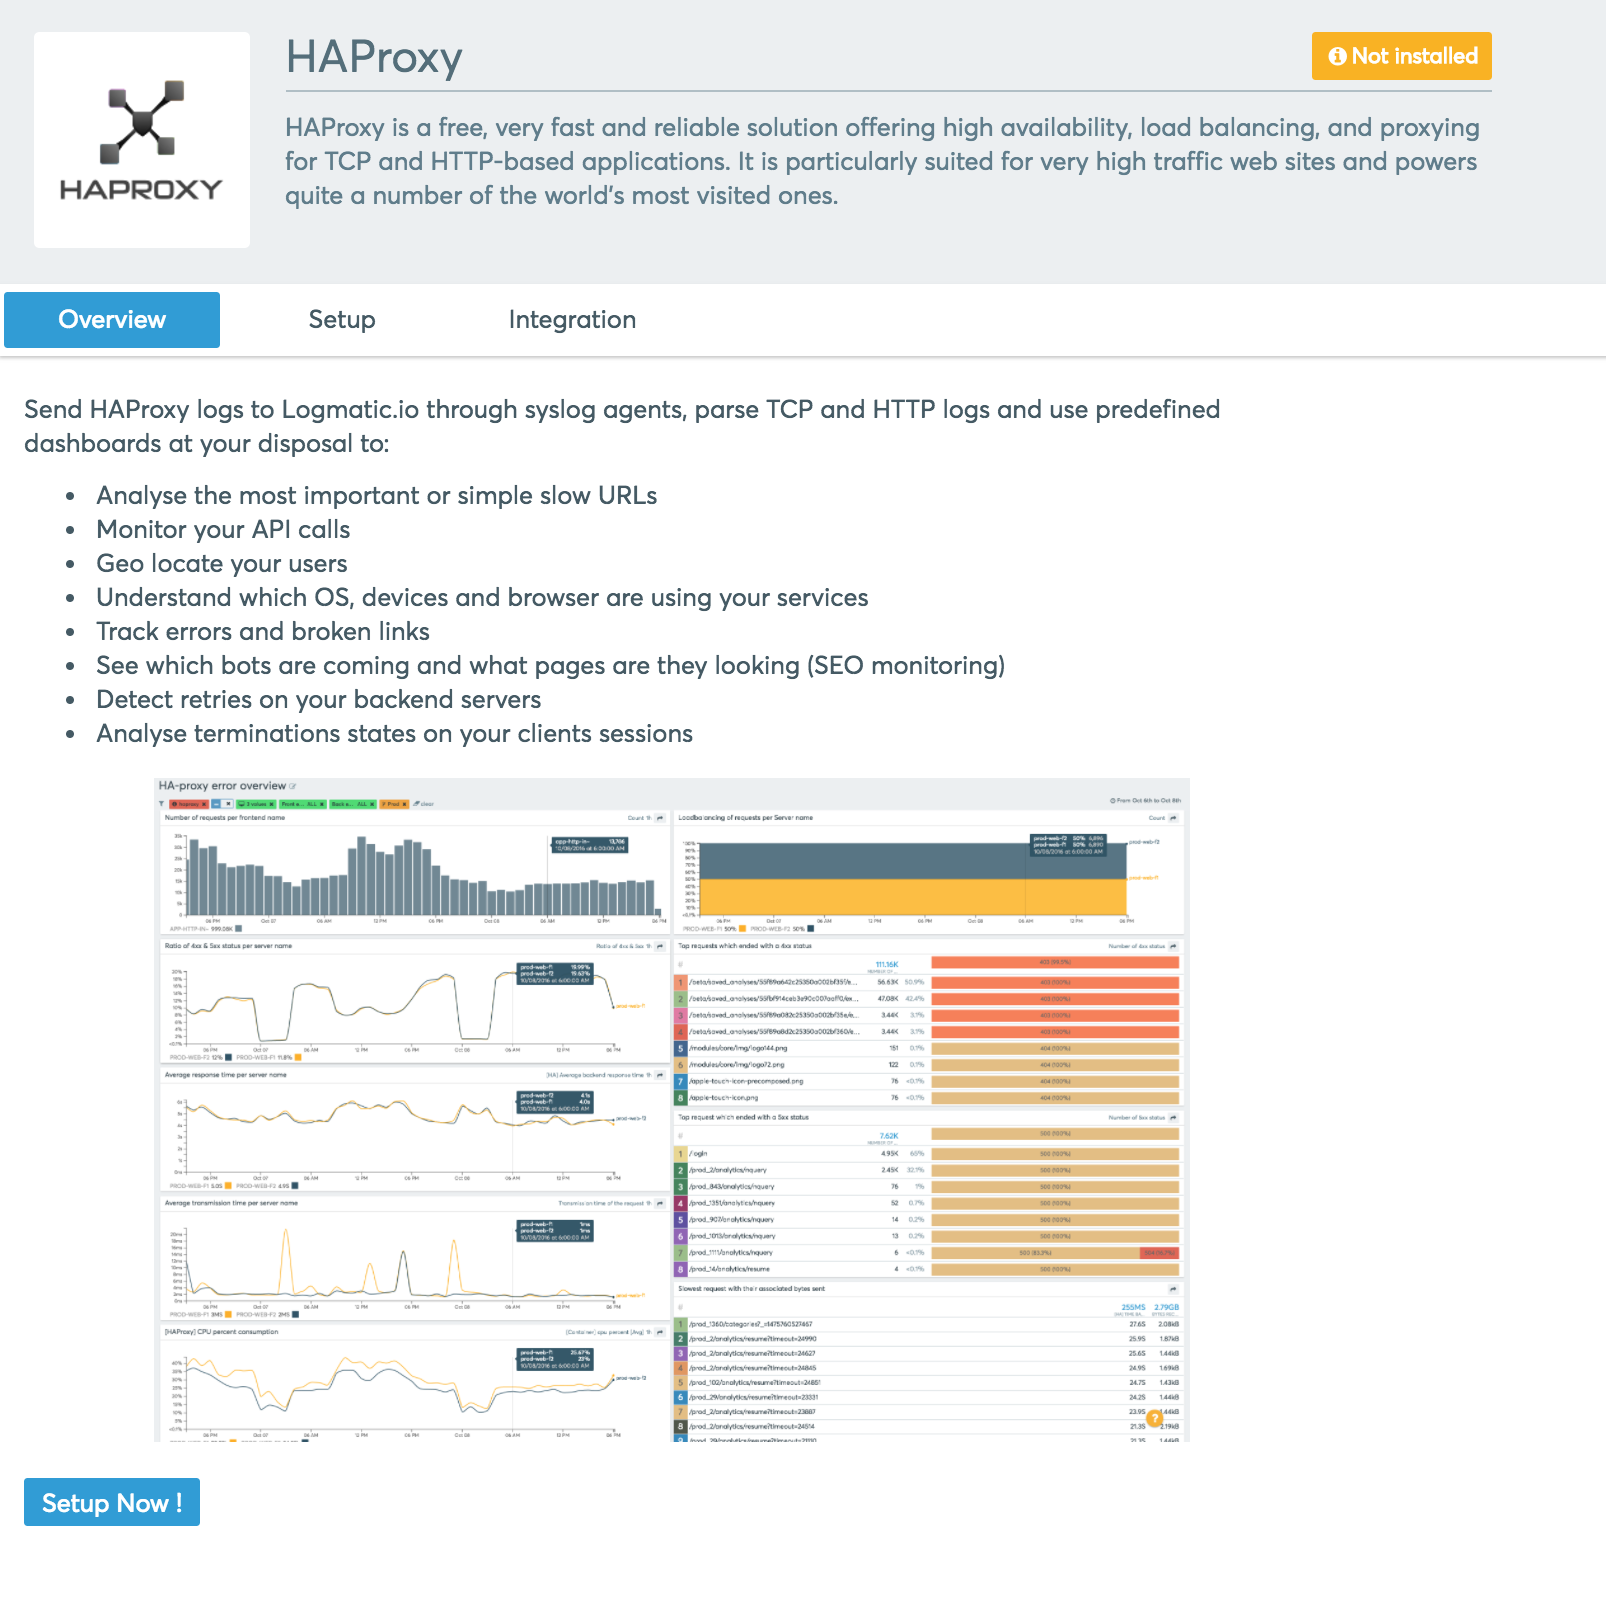 The HAProxy integration page